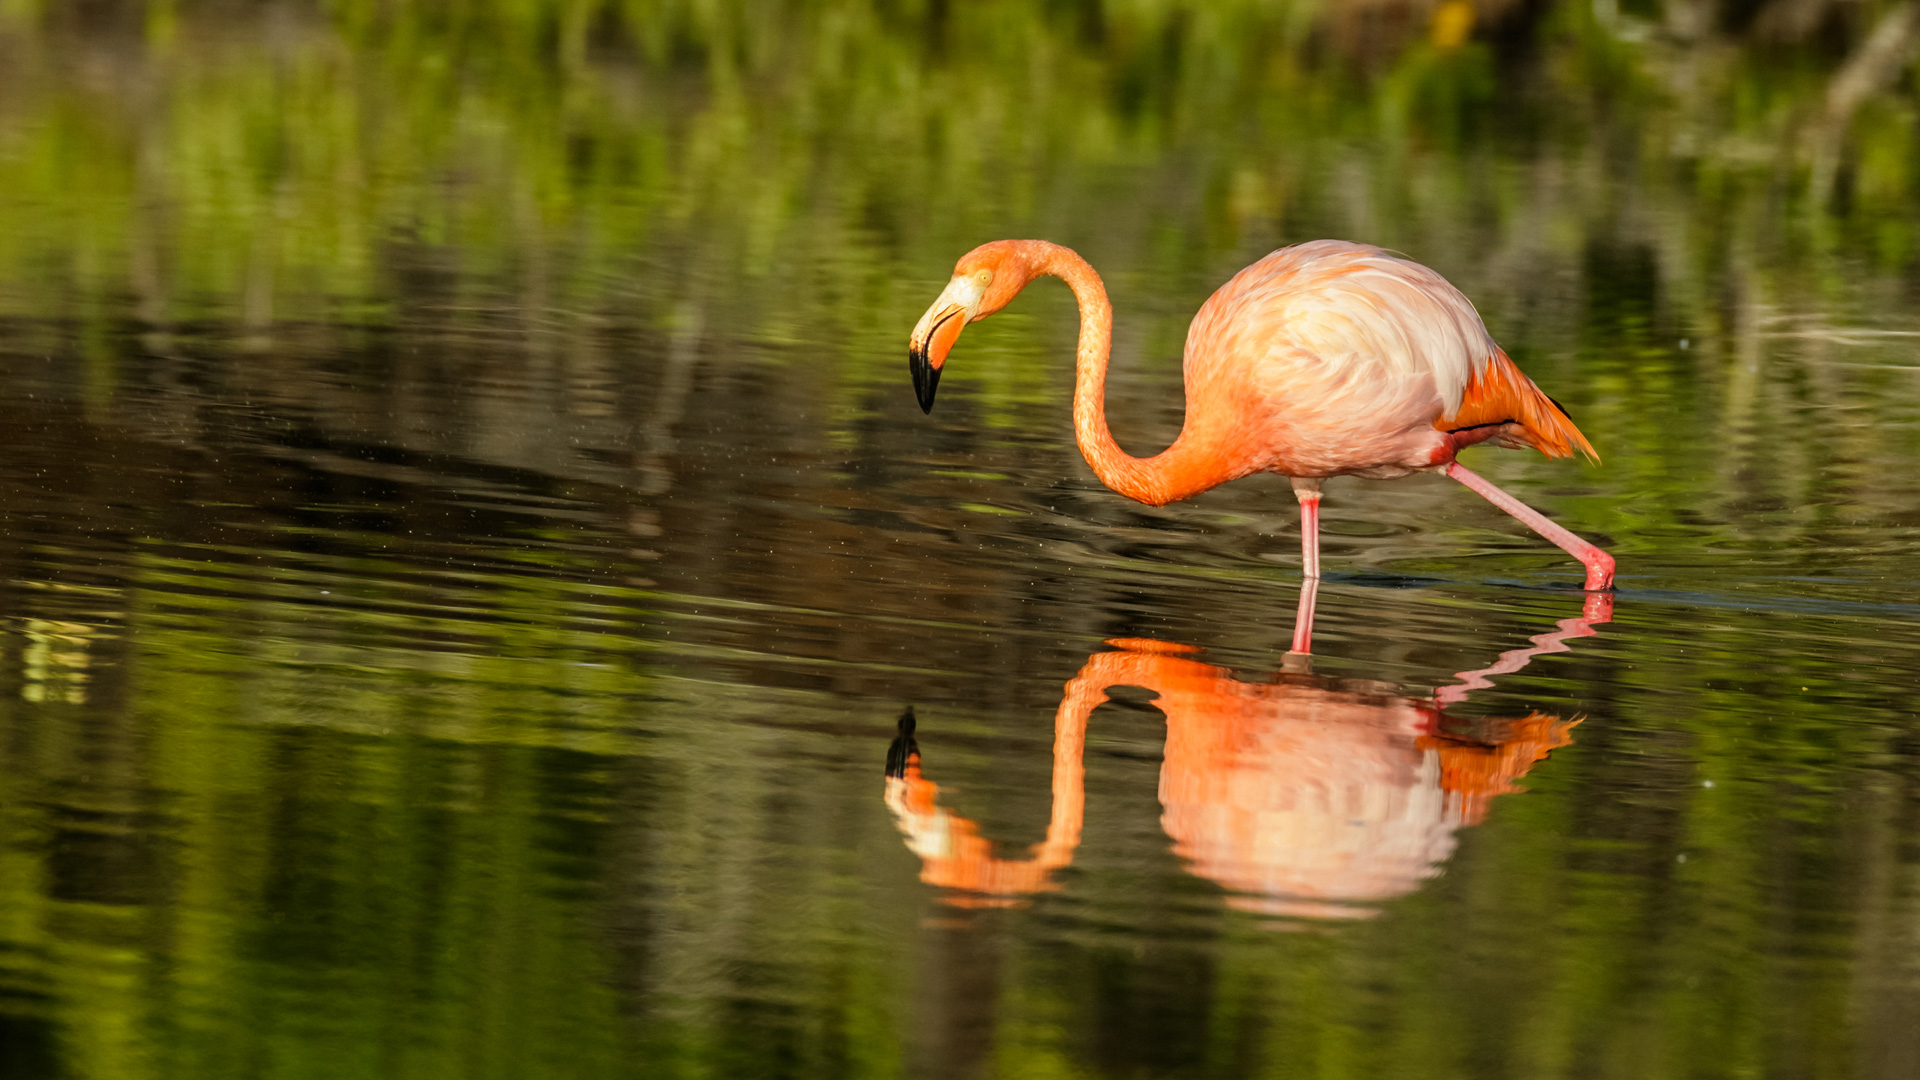 Galapagos by Caron Steele - Flamingo